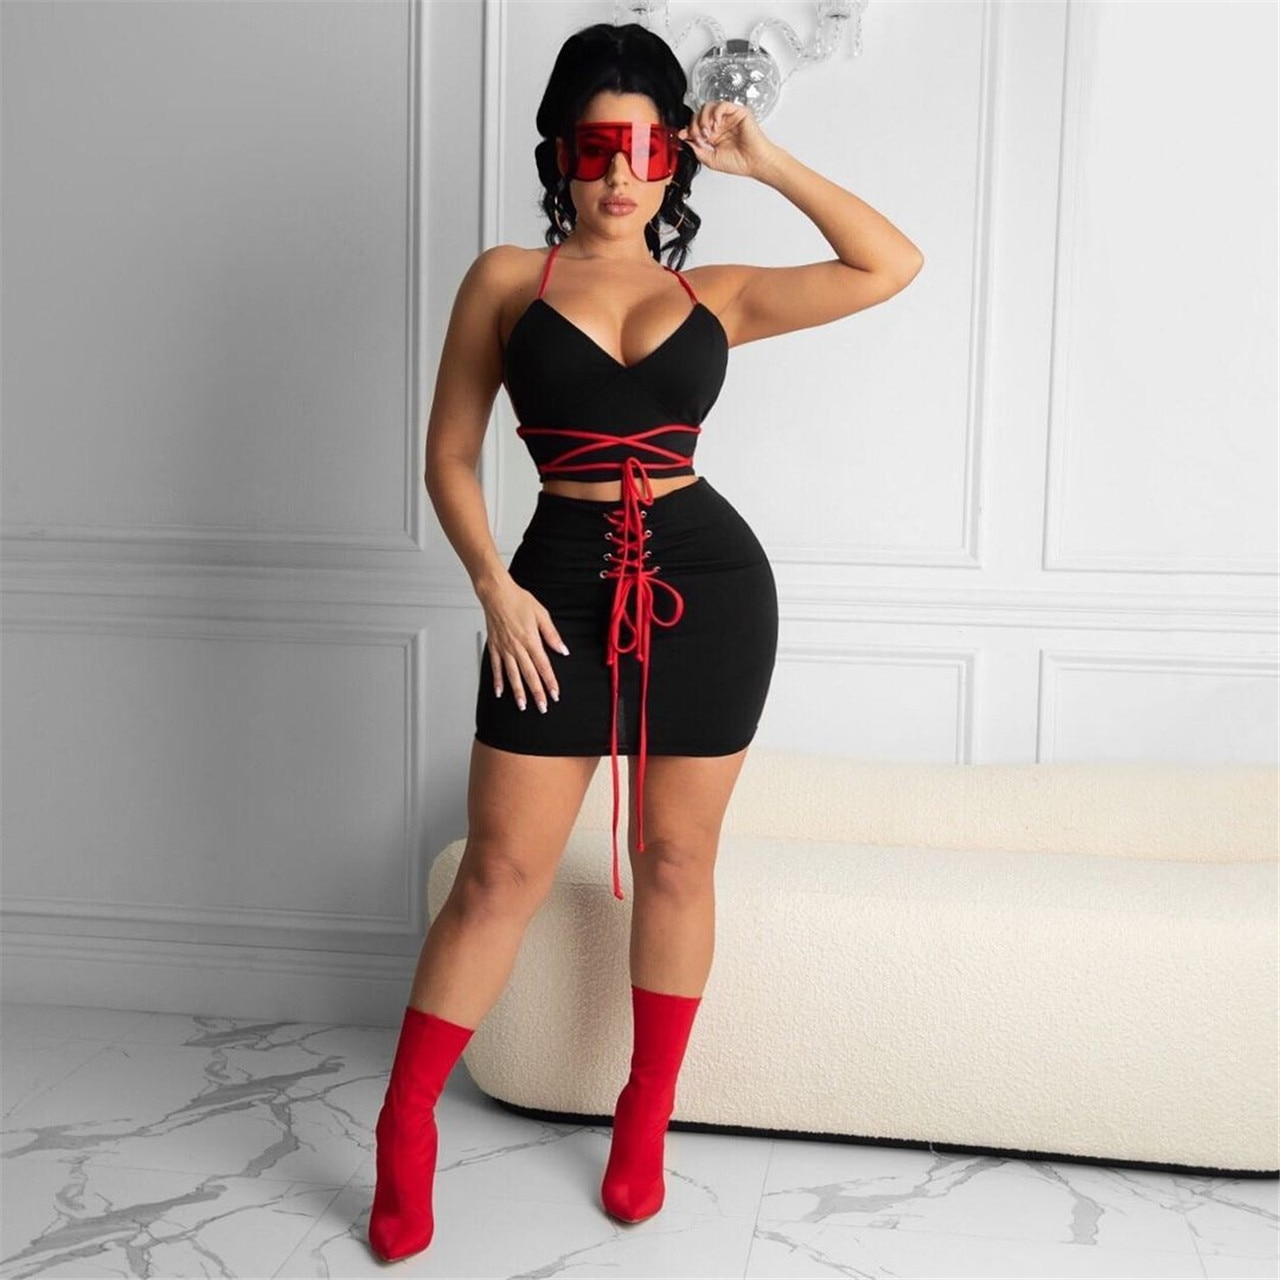 Adogirl 2021 Summer Two Piece Set Woman Halter Back Lace Up Croset Top And Cross Bandage Mini Skirt Casual Streetwear Outfits knot back halter top